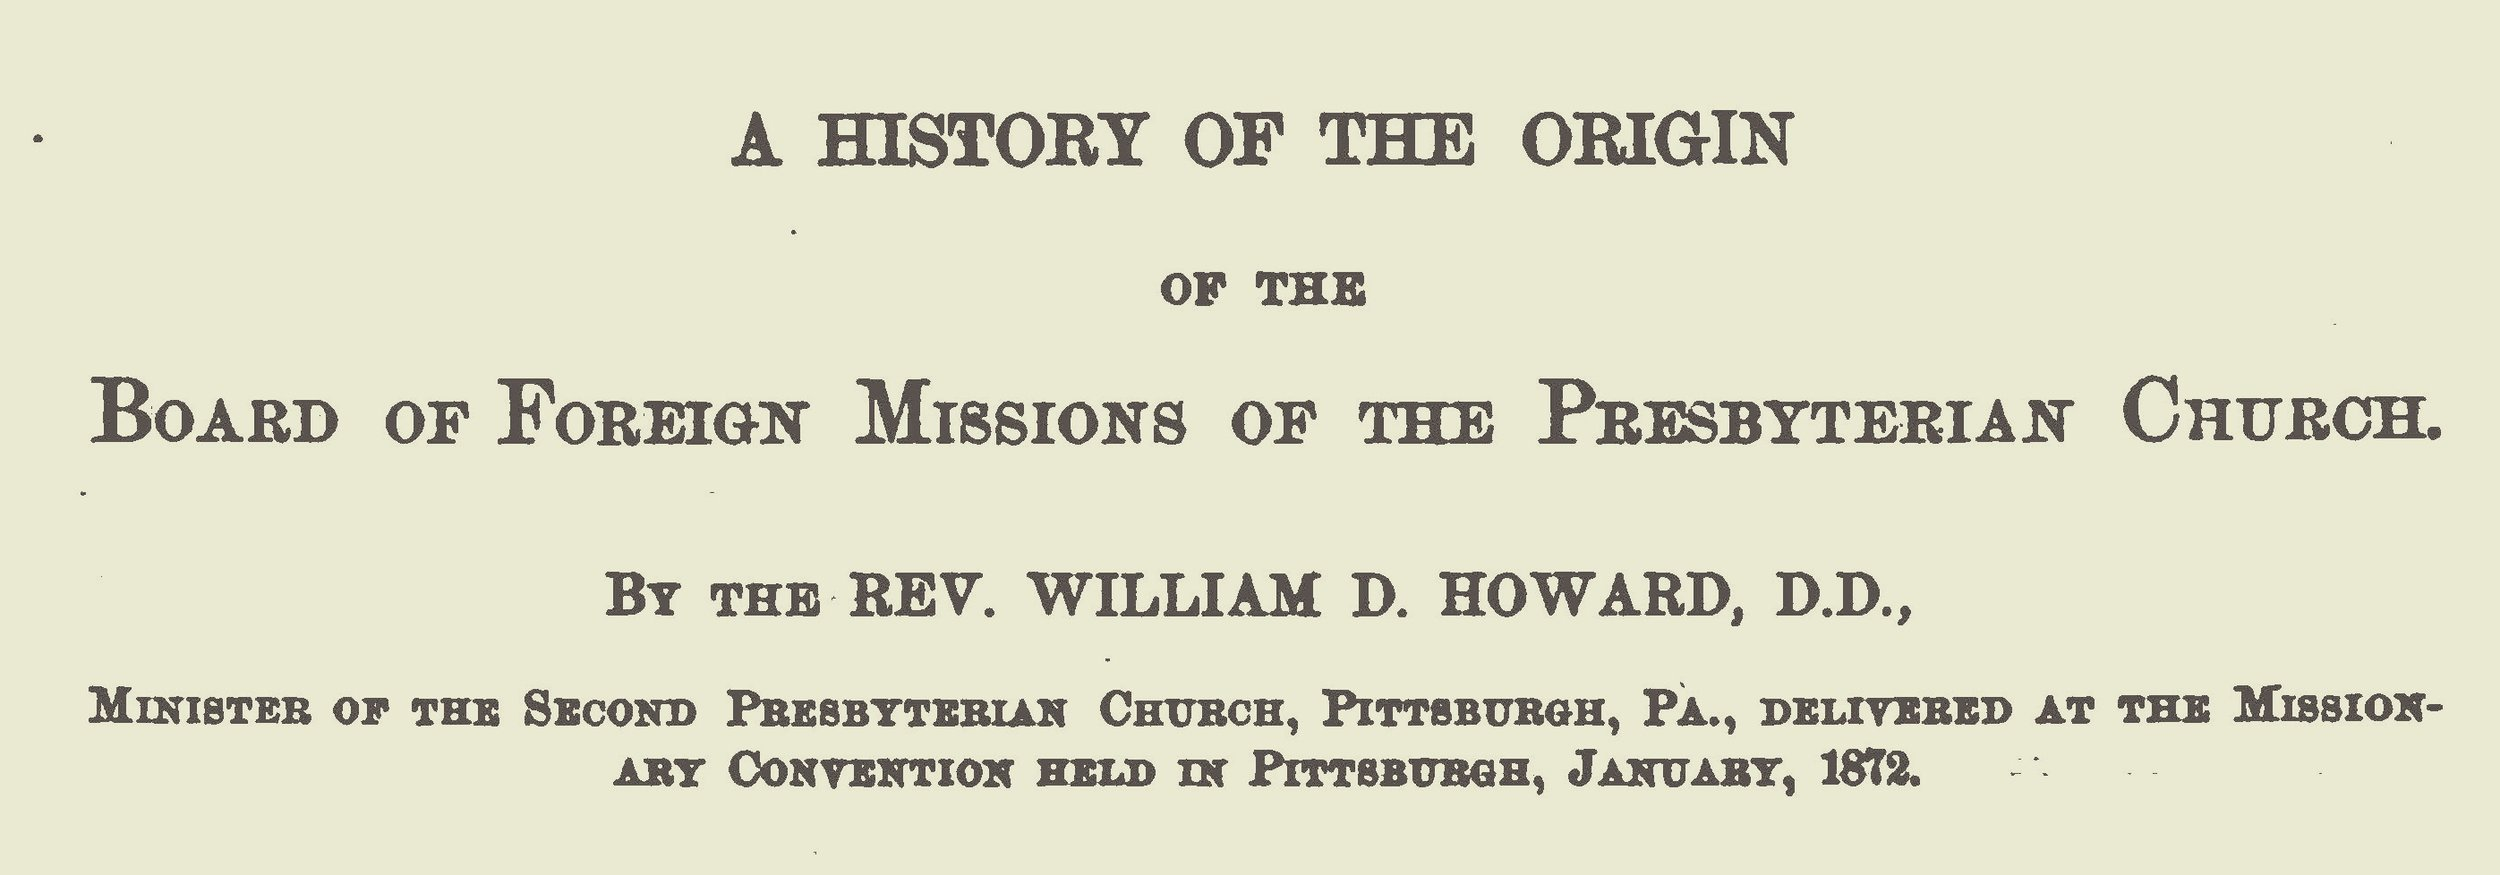 This volume is courtesy of Dr. Wayne Sparkman, Director of the PCA Historical Center.